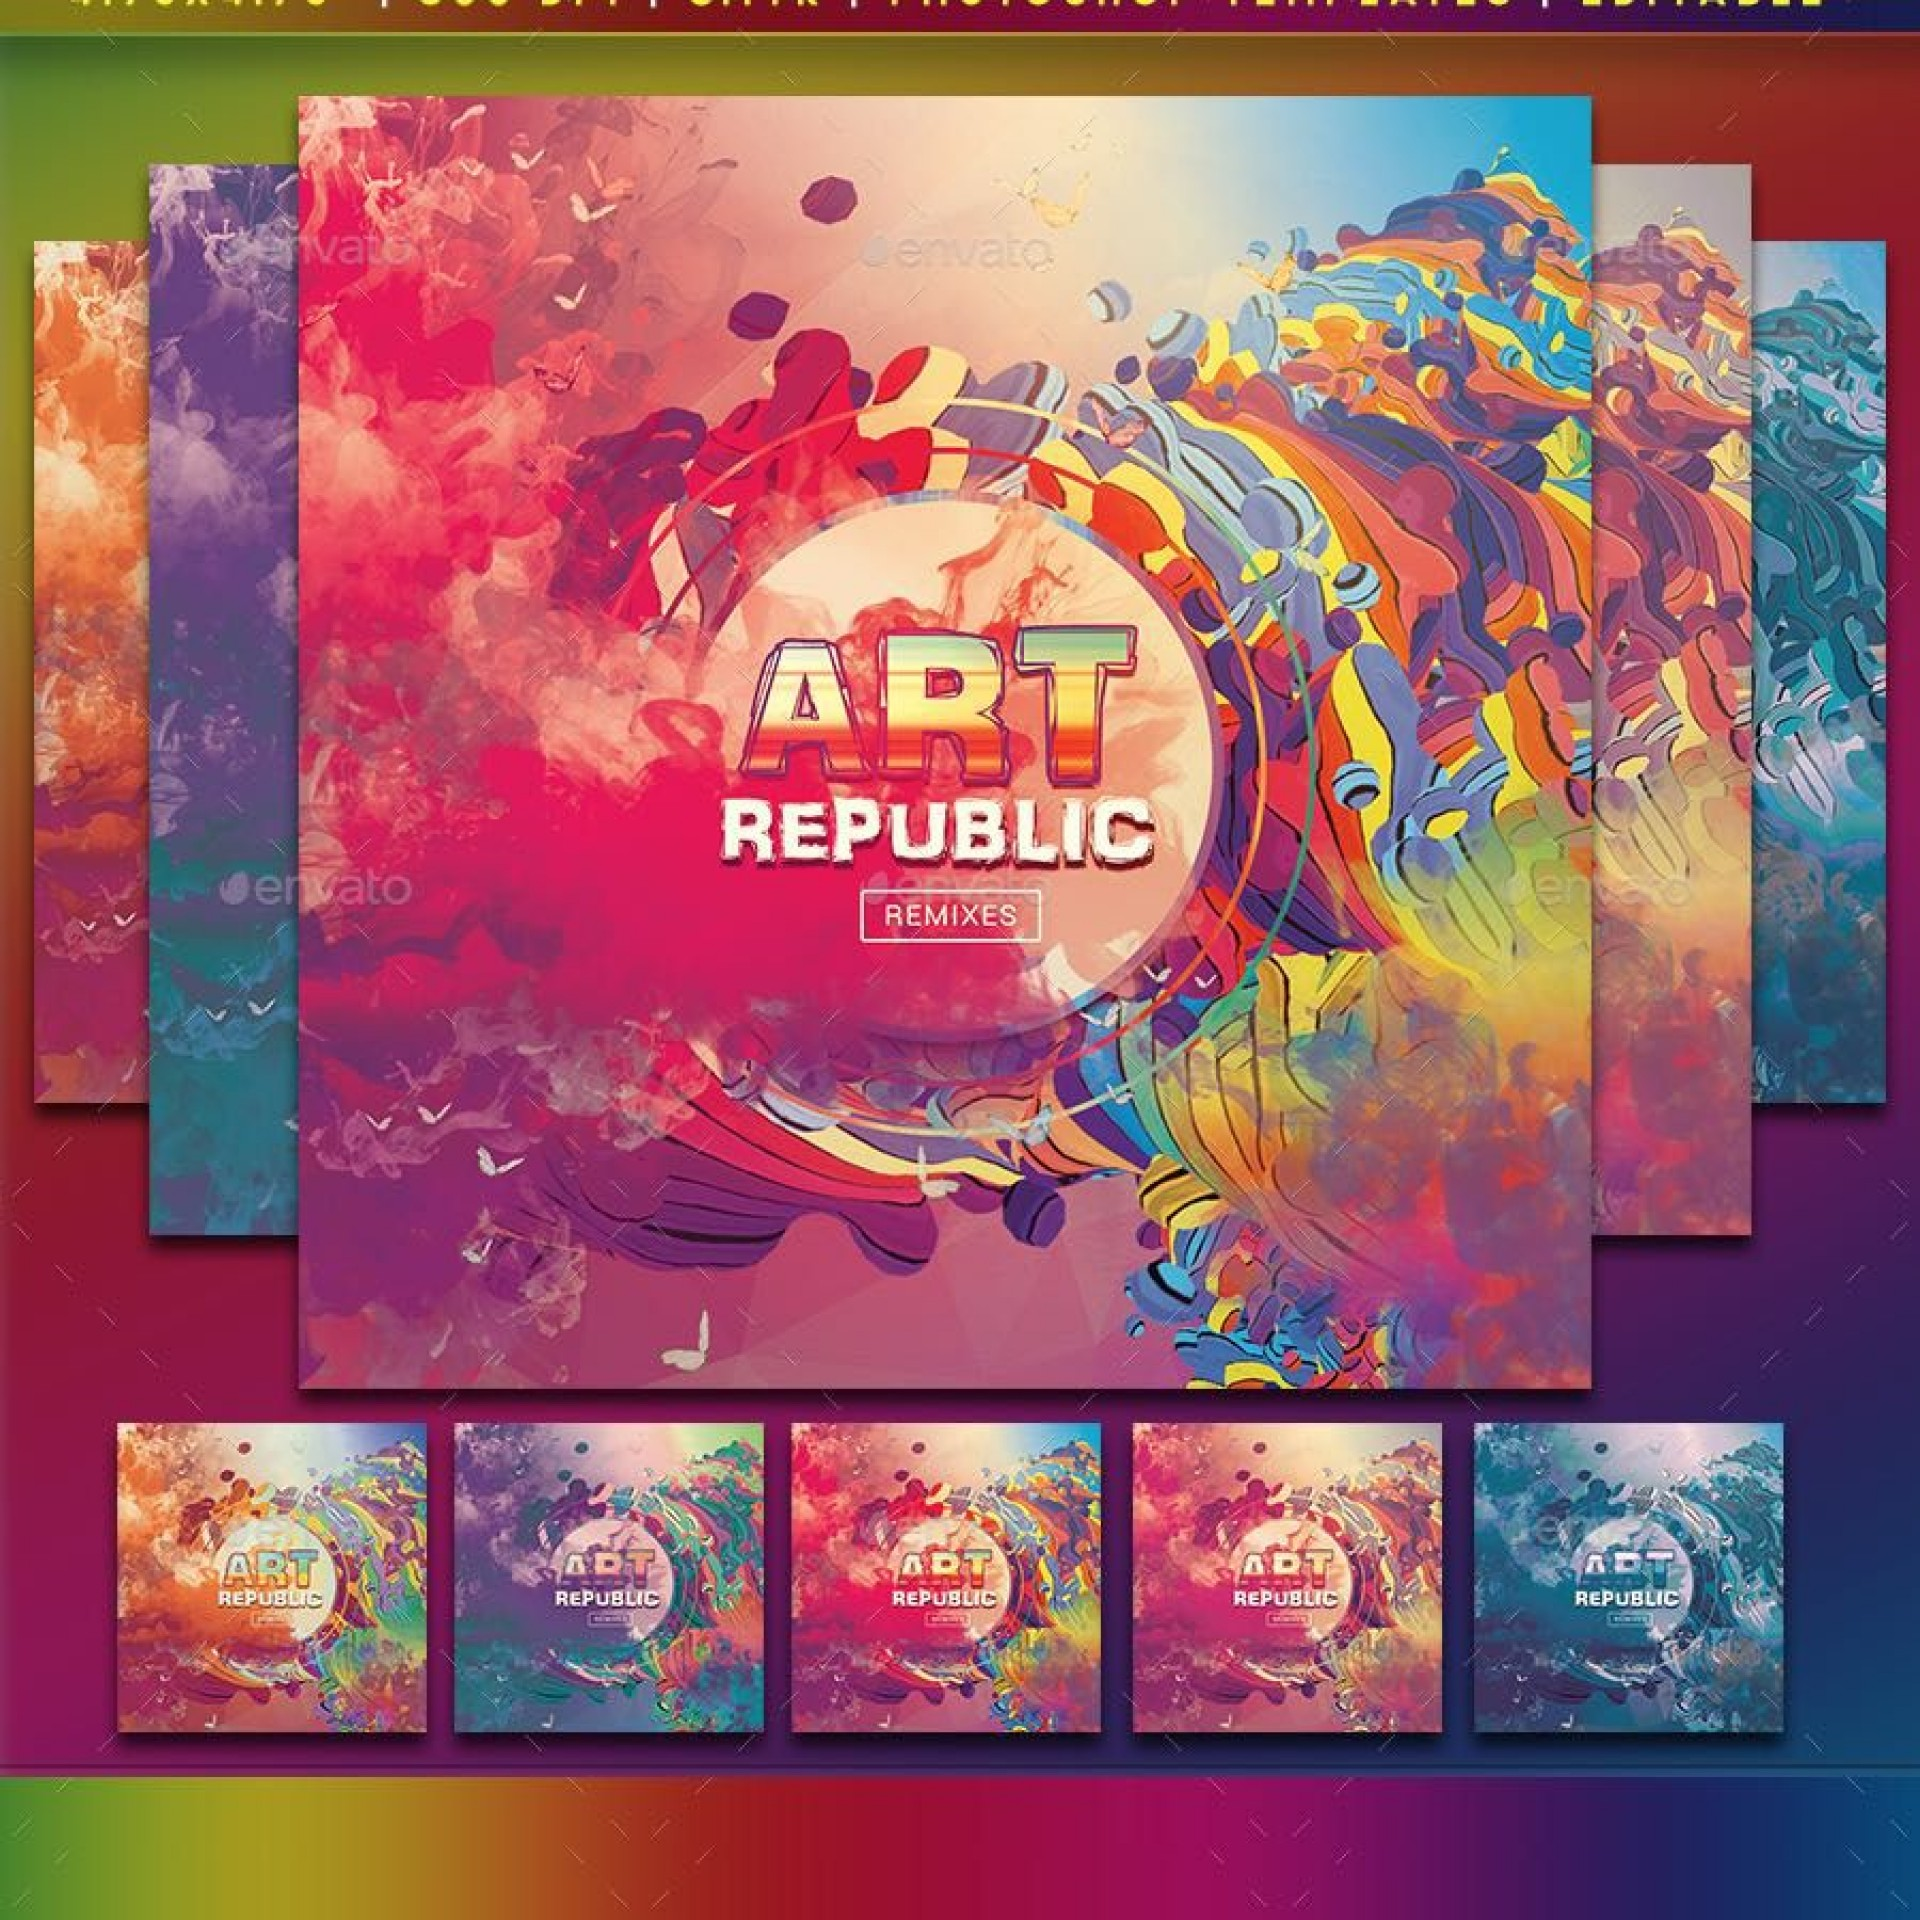 003 Staggering Free Cd Cover Design Template Photoshop Sample  Label Psd Download1920